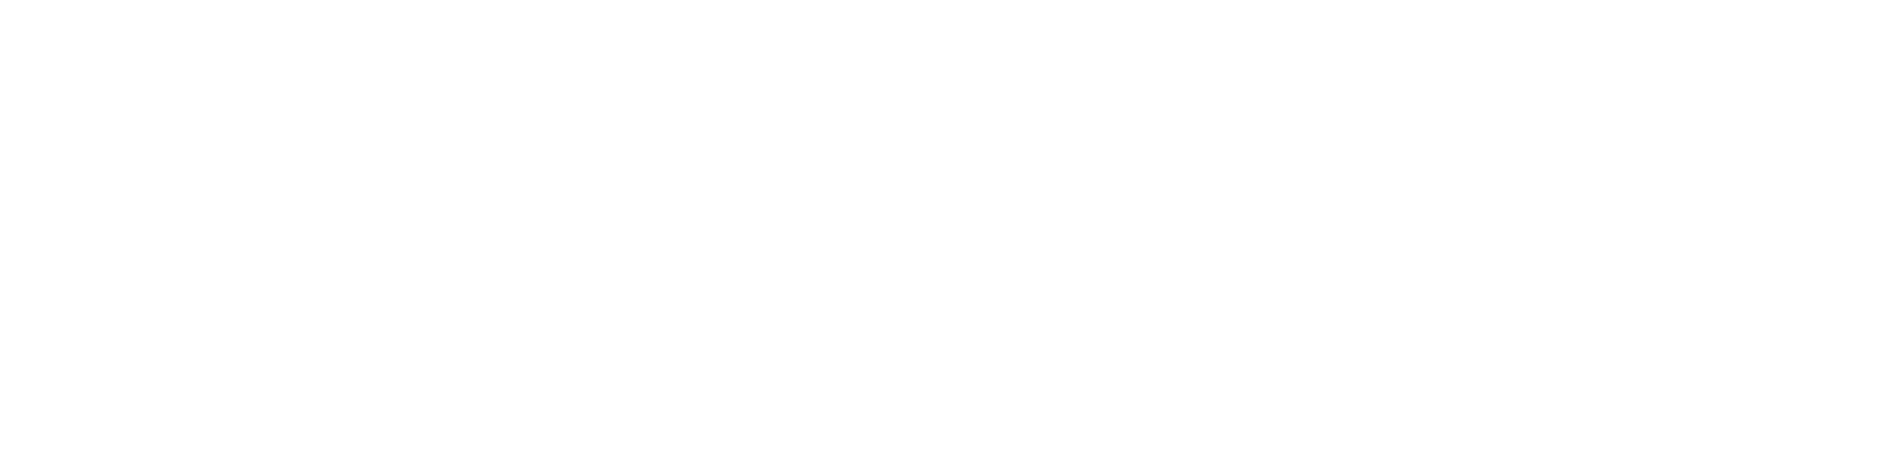 classifieds-title